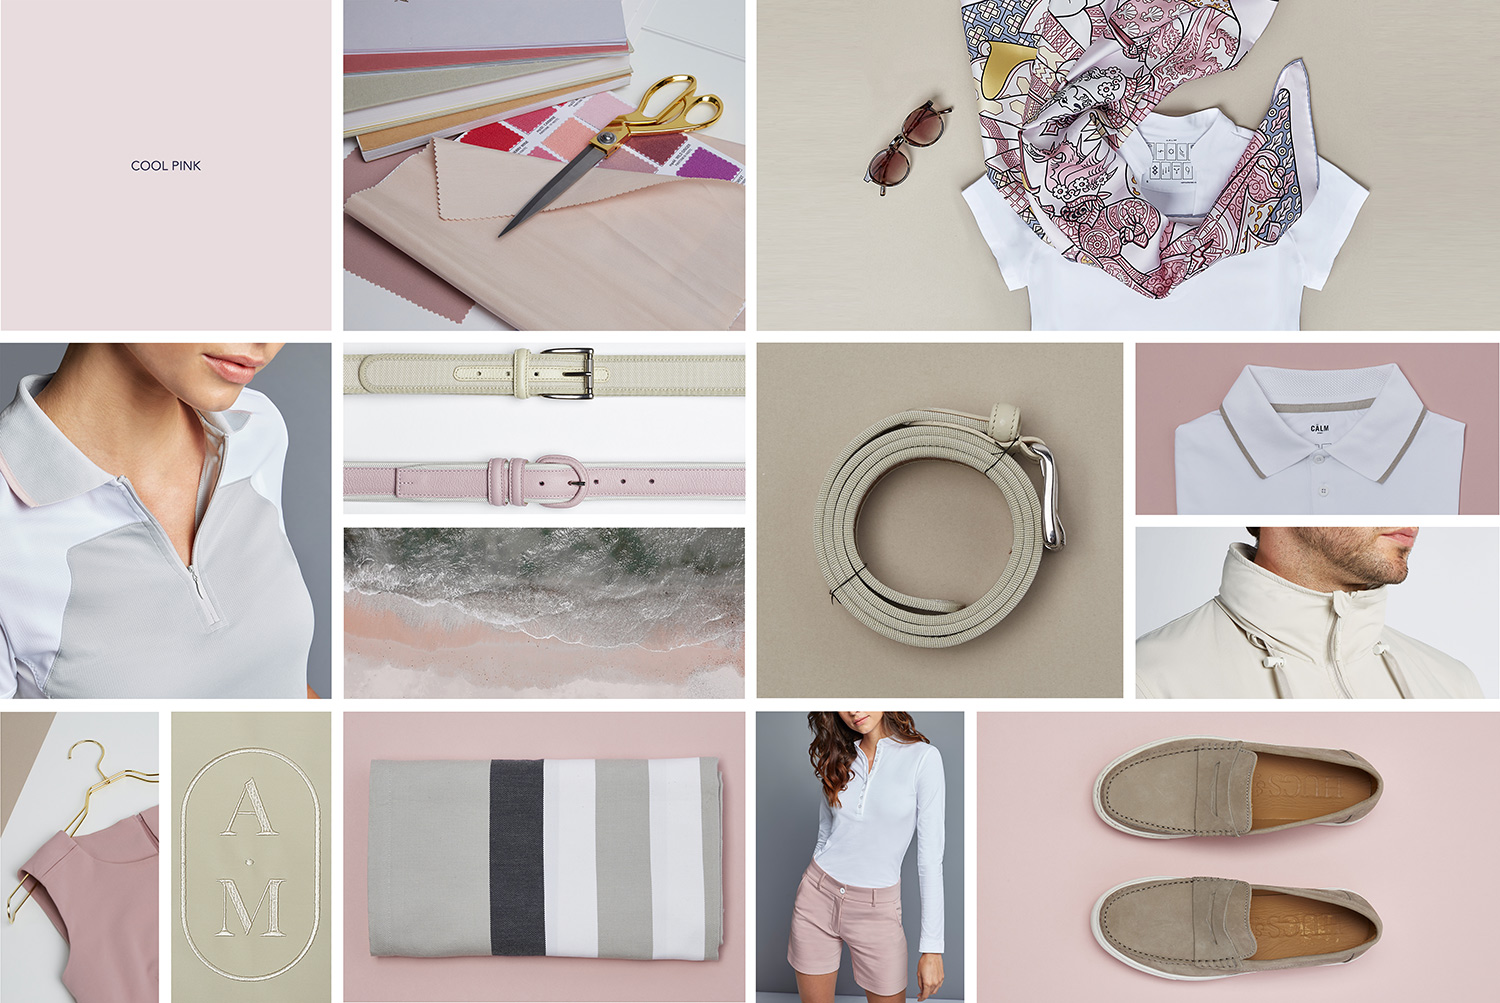 crew-a-la-mode-archive-coolpink-moodboard-30.08.jpg